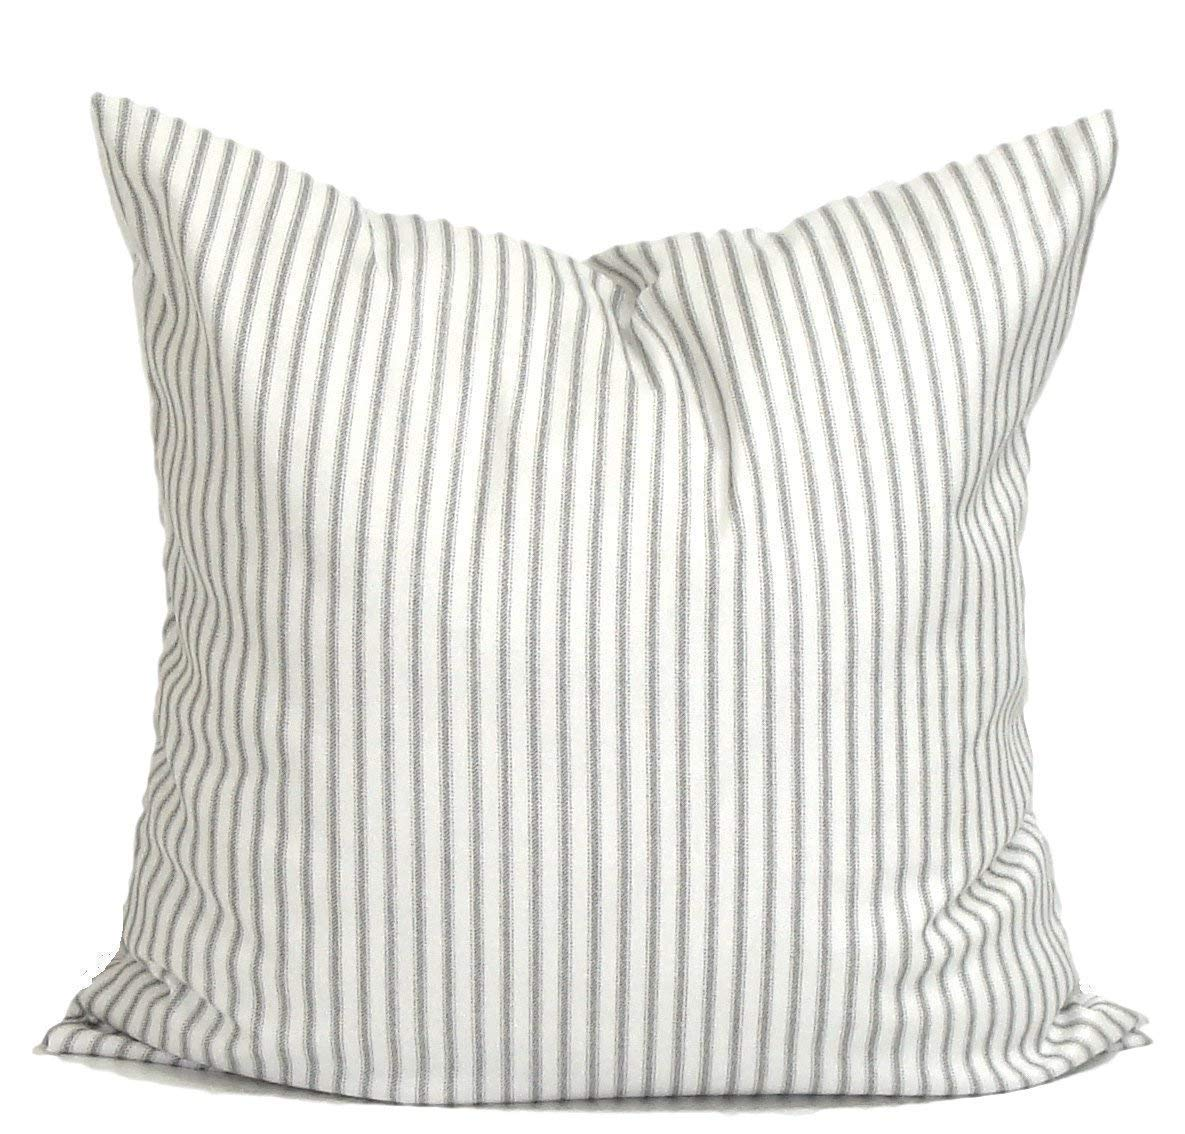 Gray Ticking Pillow Cover